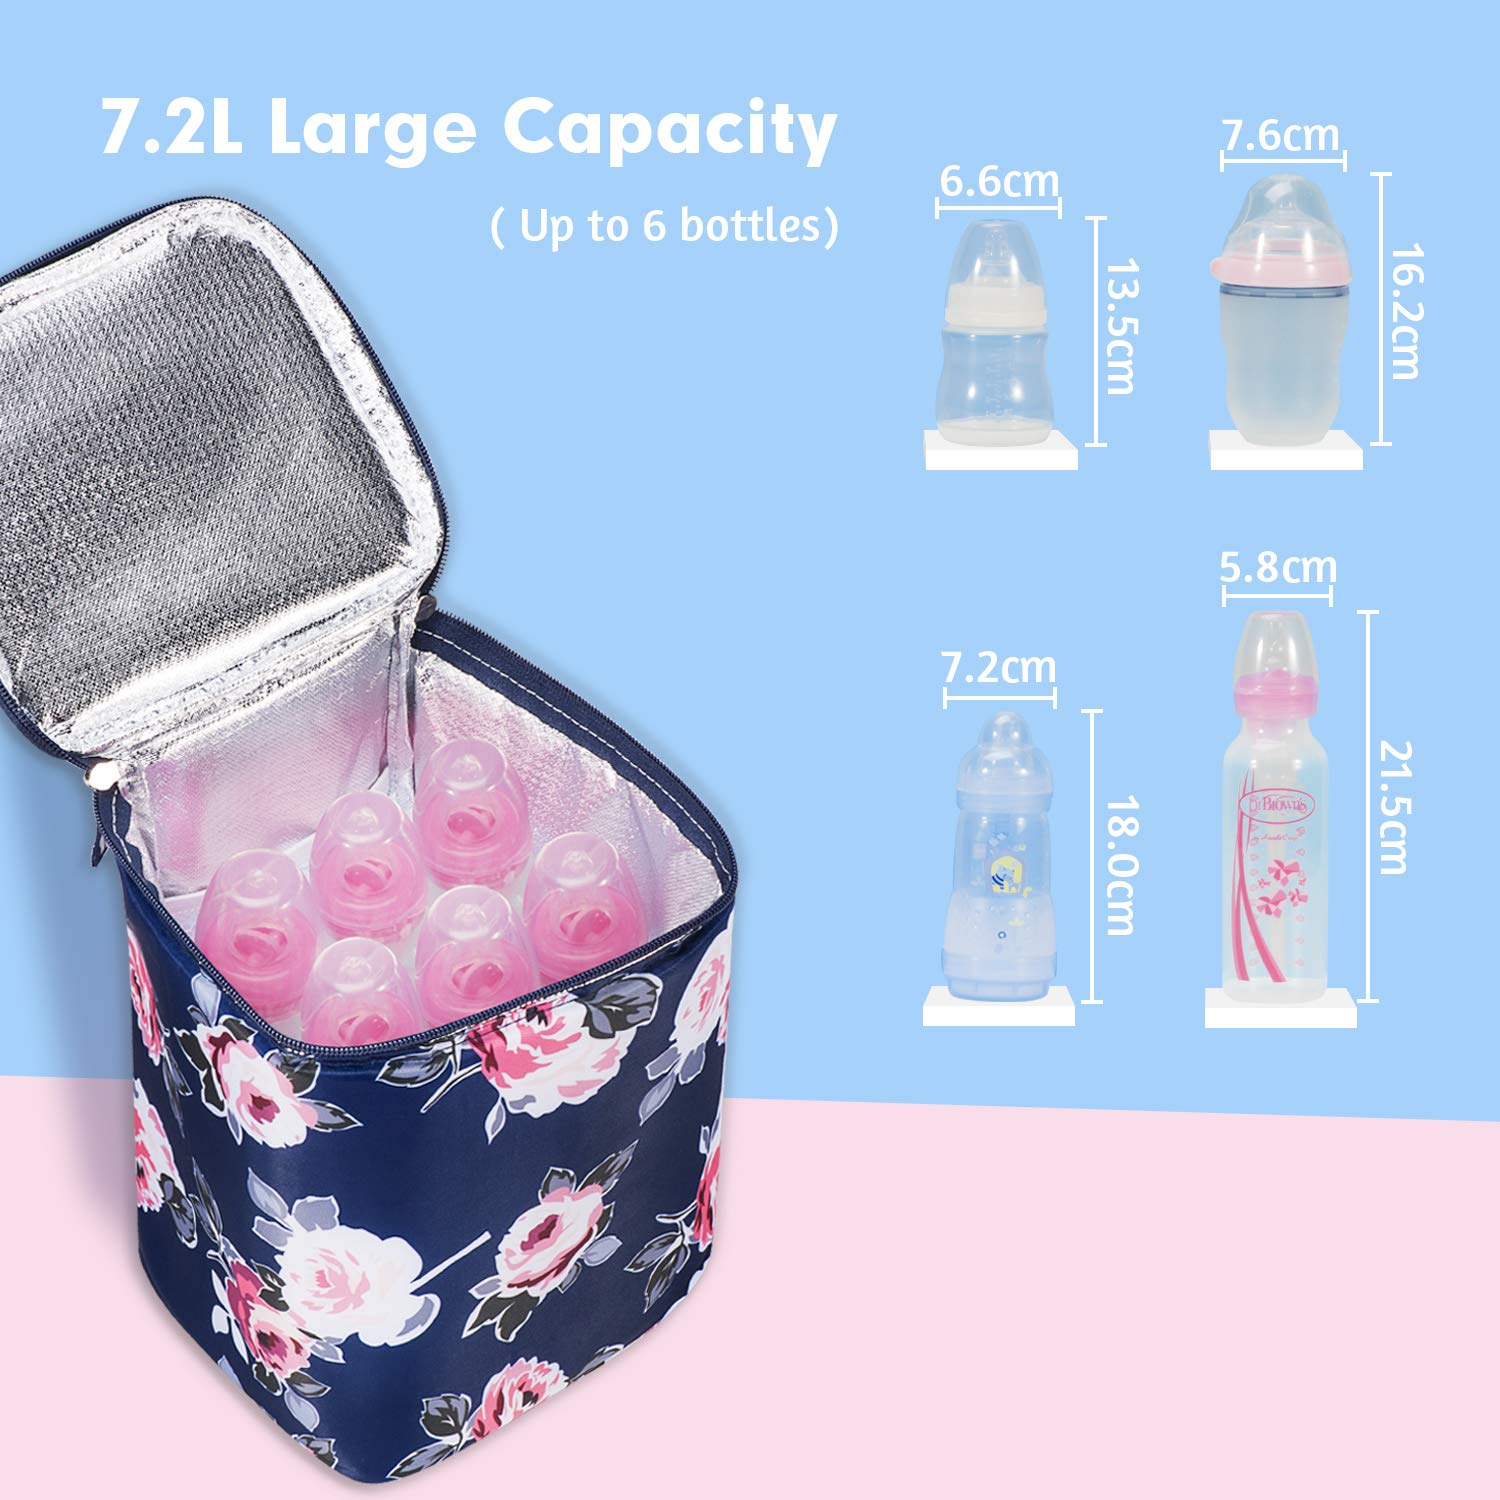 Brown Lansinoh,etc Momcozy Insulated Breastmilk Cooler and Baby Bottle Bag Nuk Bottles like Comotomo Fit Up to 6 bottles like Dr Philips Avent 4 Large 8 Oz